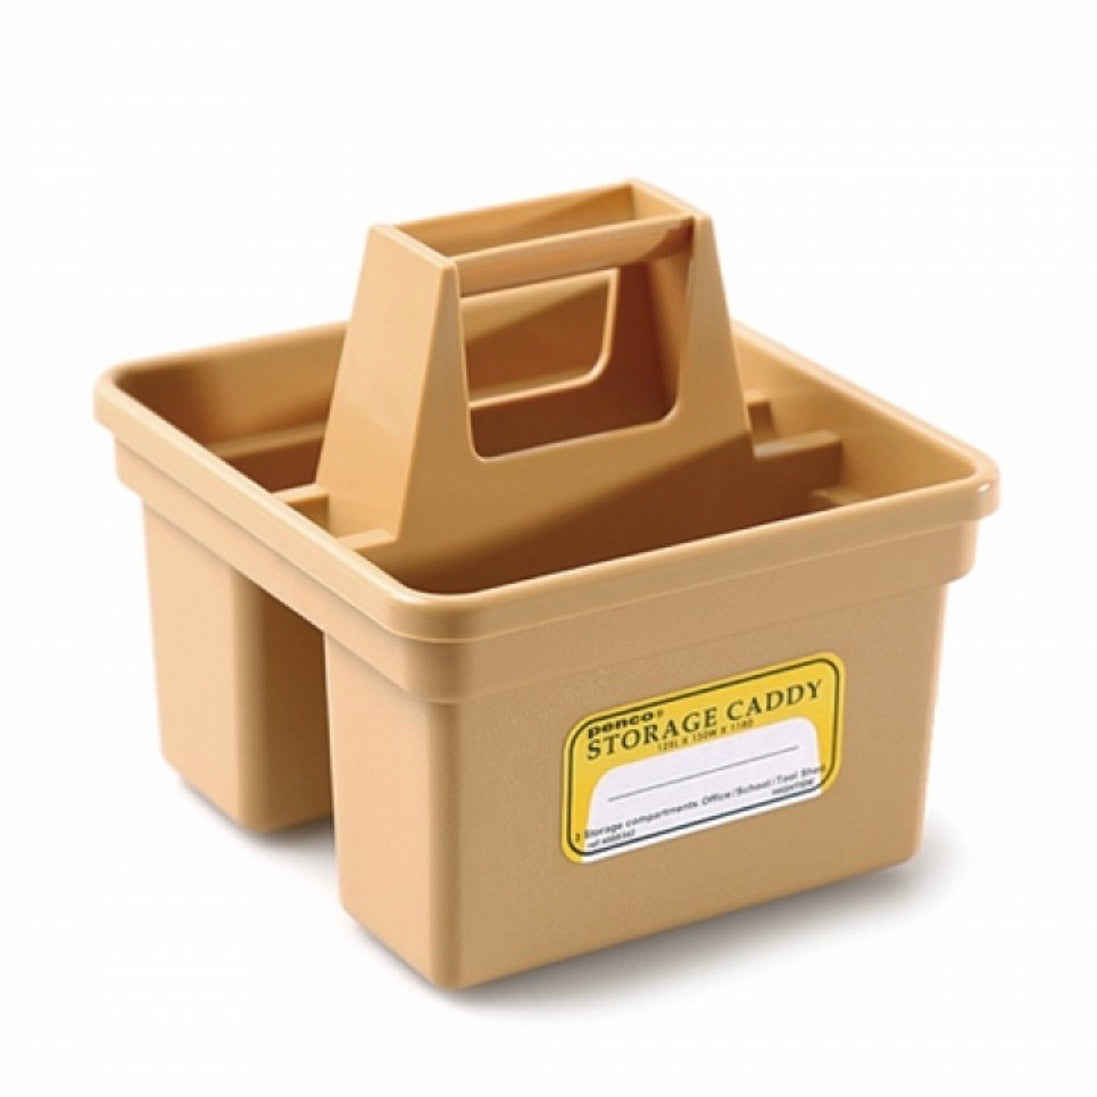 Hightide Penco: Small Storage Caddy - Tan Hightide Penco - Bon Tot